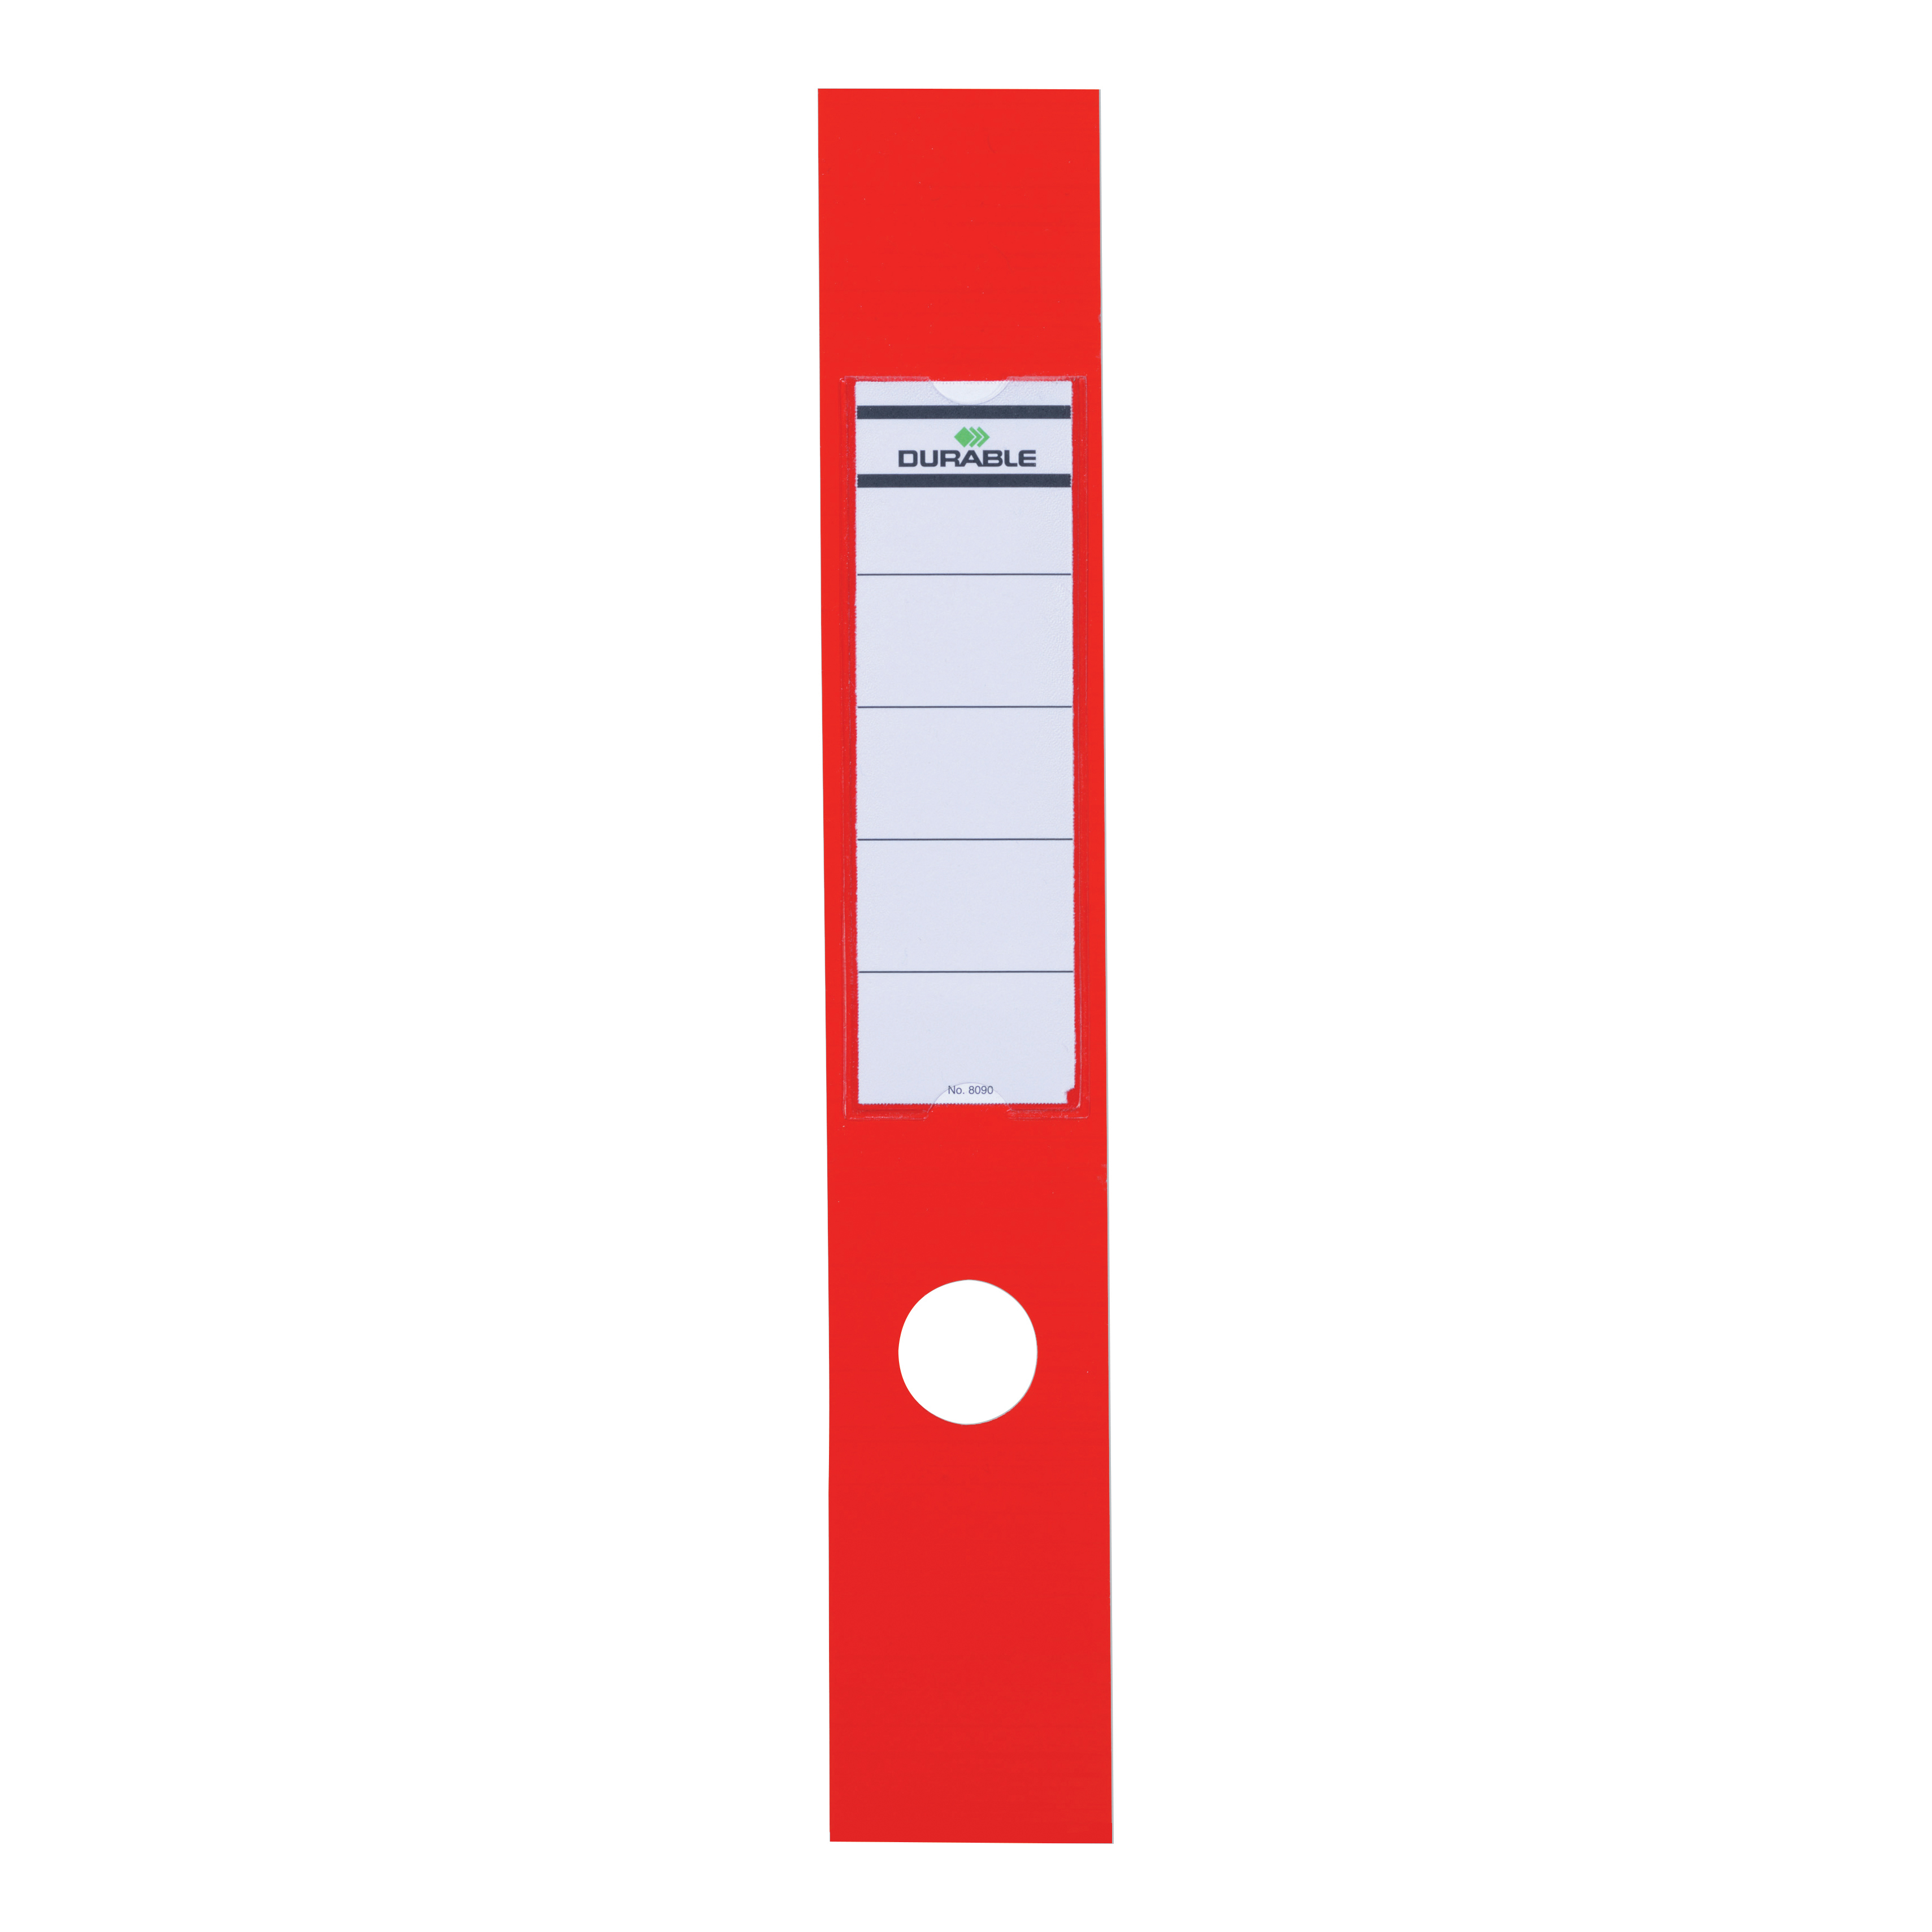 Durable Ordofix Spine Labels 390x60mm Self-adhesive PVC for Lever Arch File Red Ref 8090/03 [Pack 10]